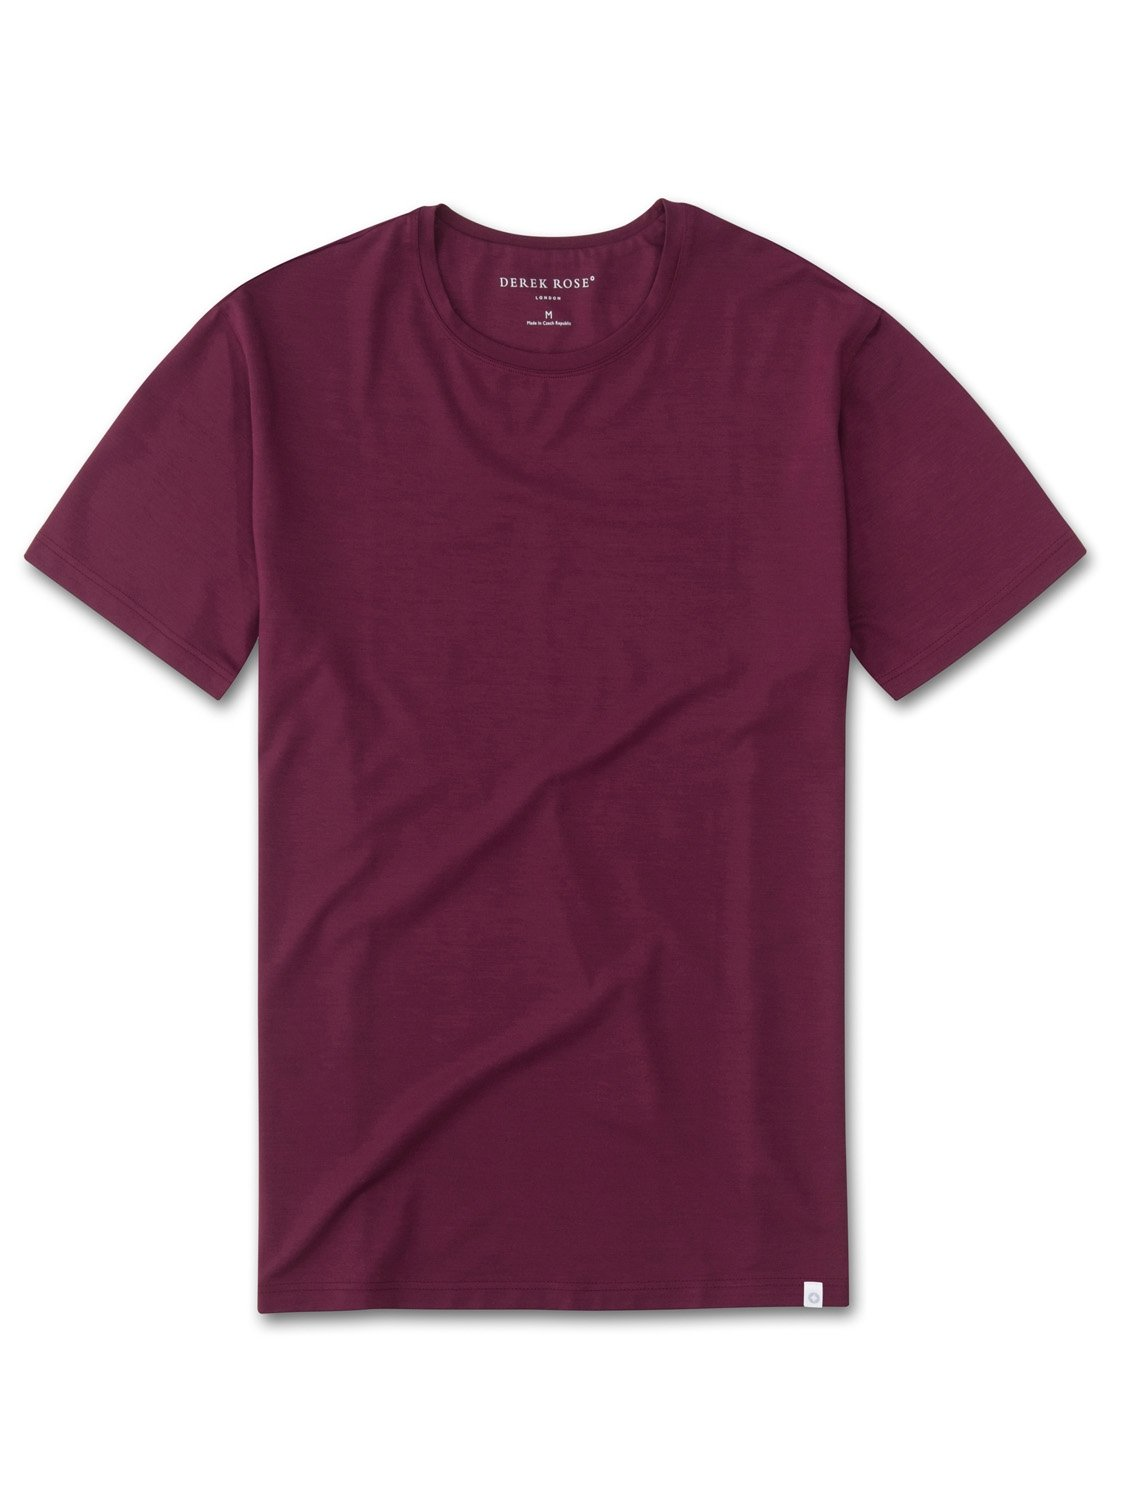 Men's Short Sleeve T-Shirt Basel 5 Micro Modal Stretch Burgundy